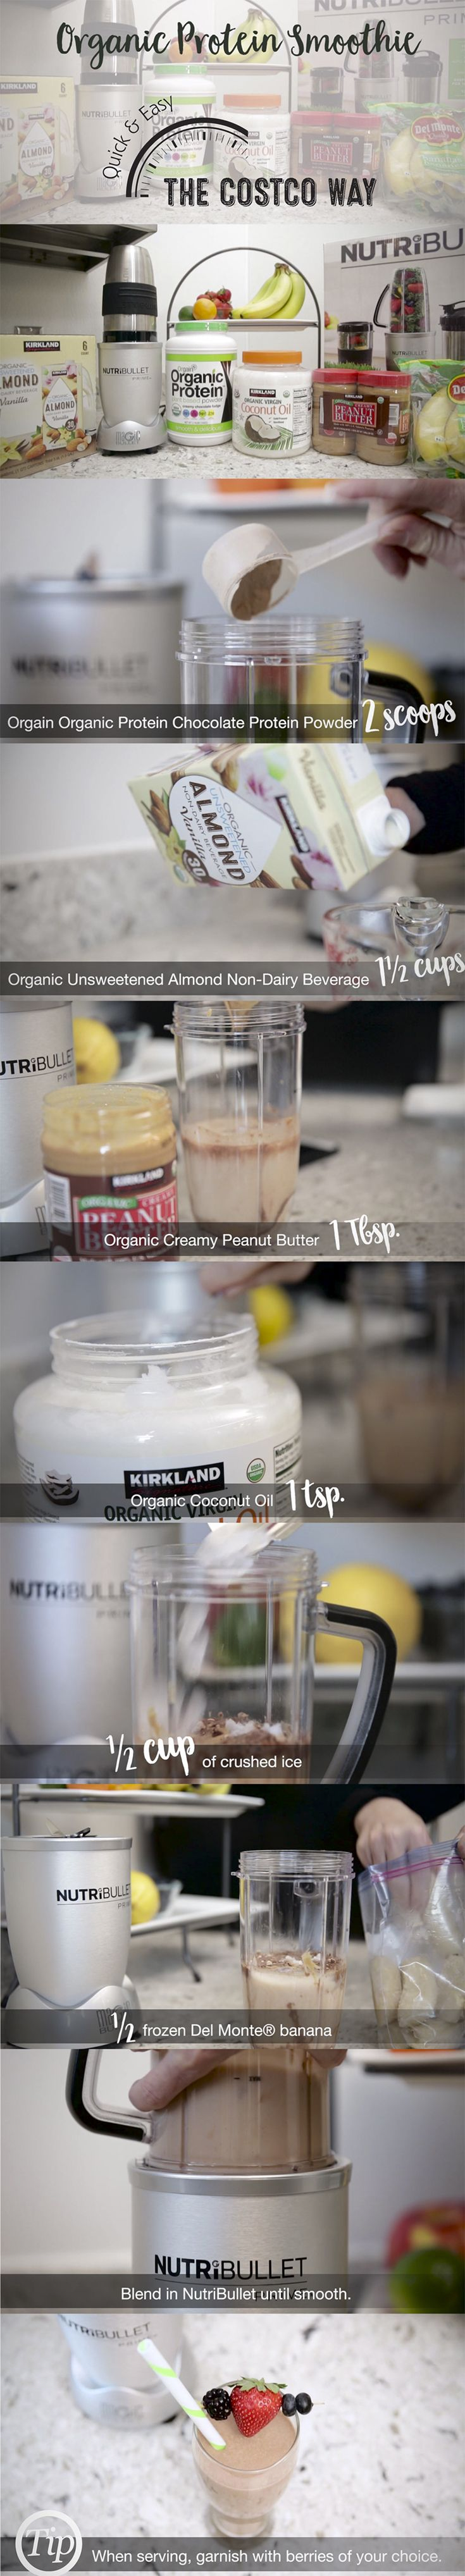 A quick and easy organic protein smoothie recipe that pairs well with your workout.